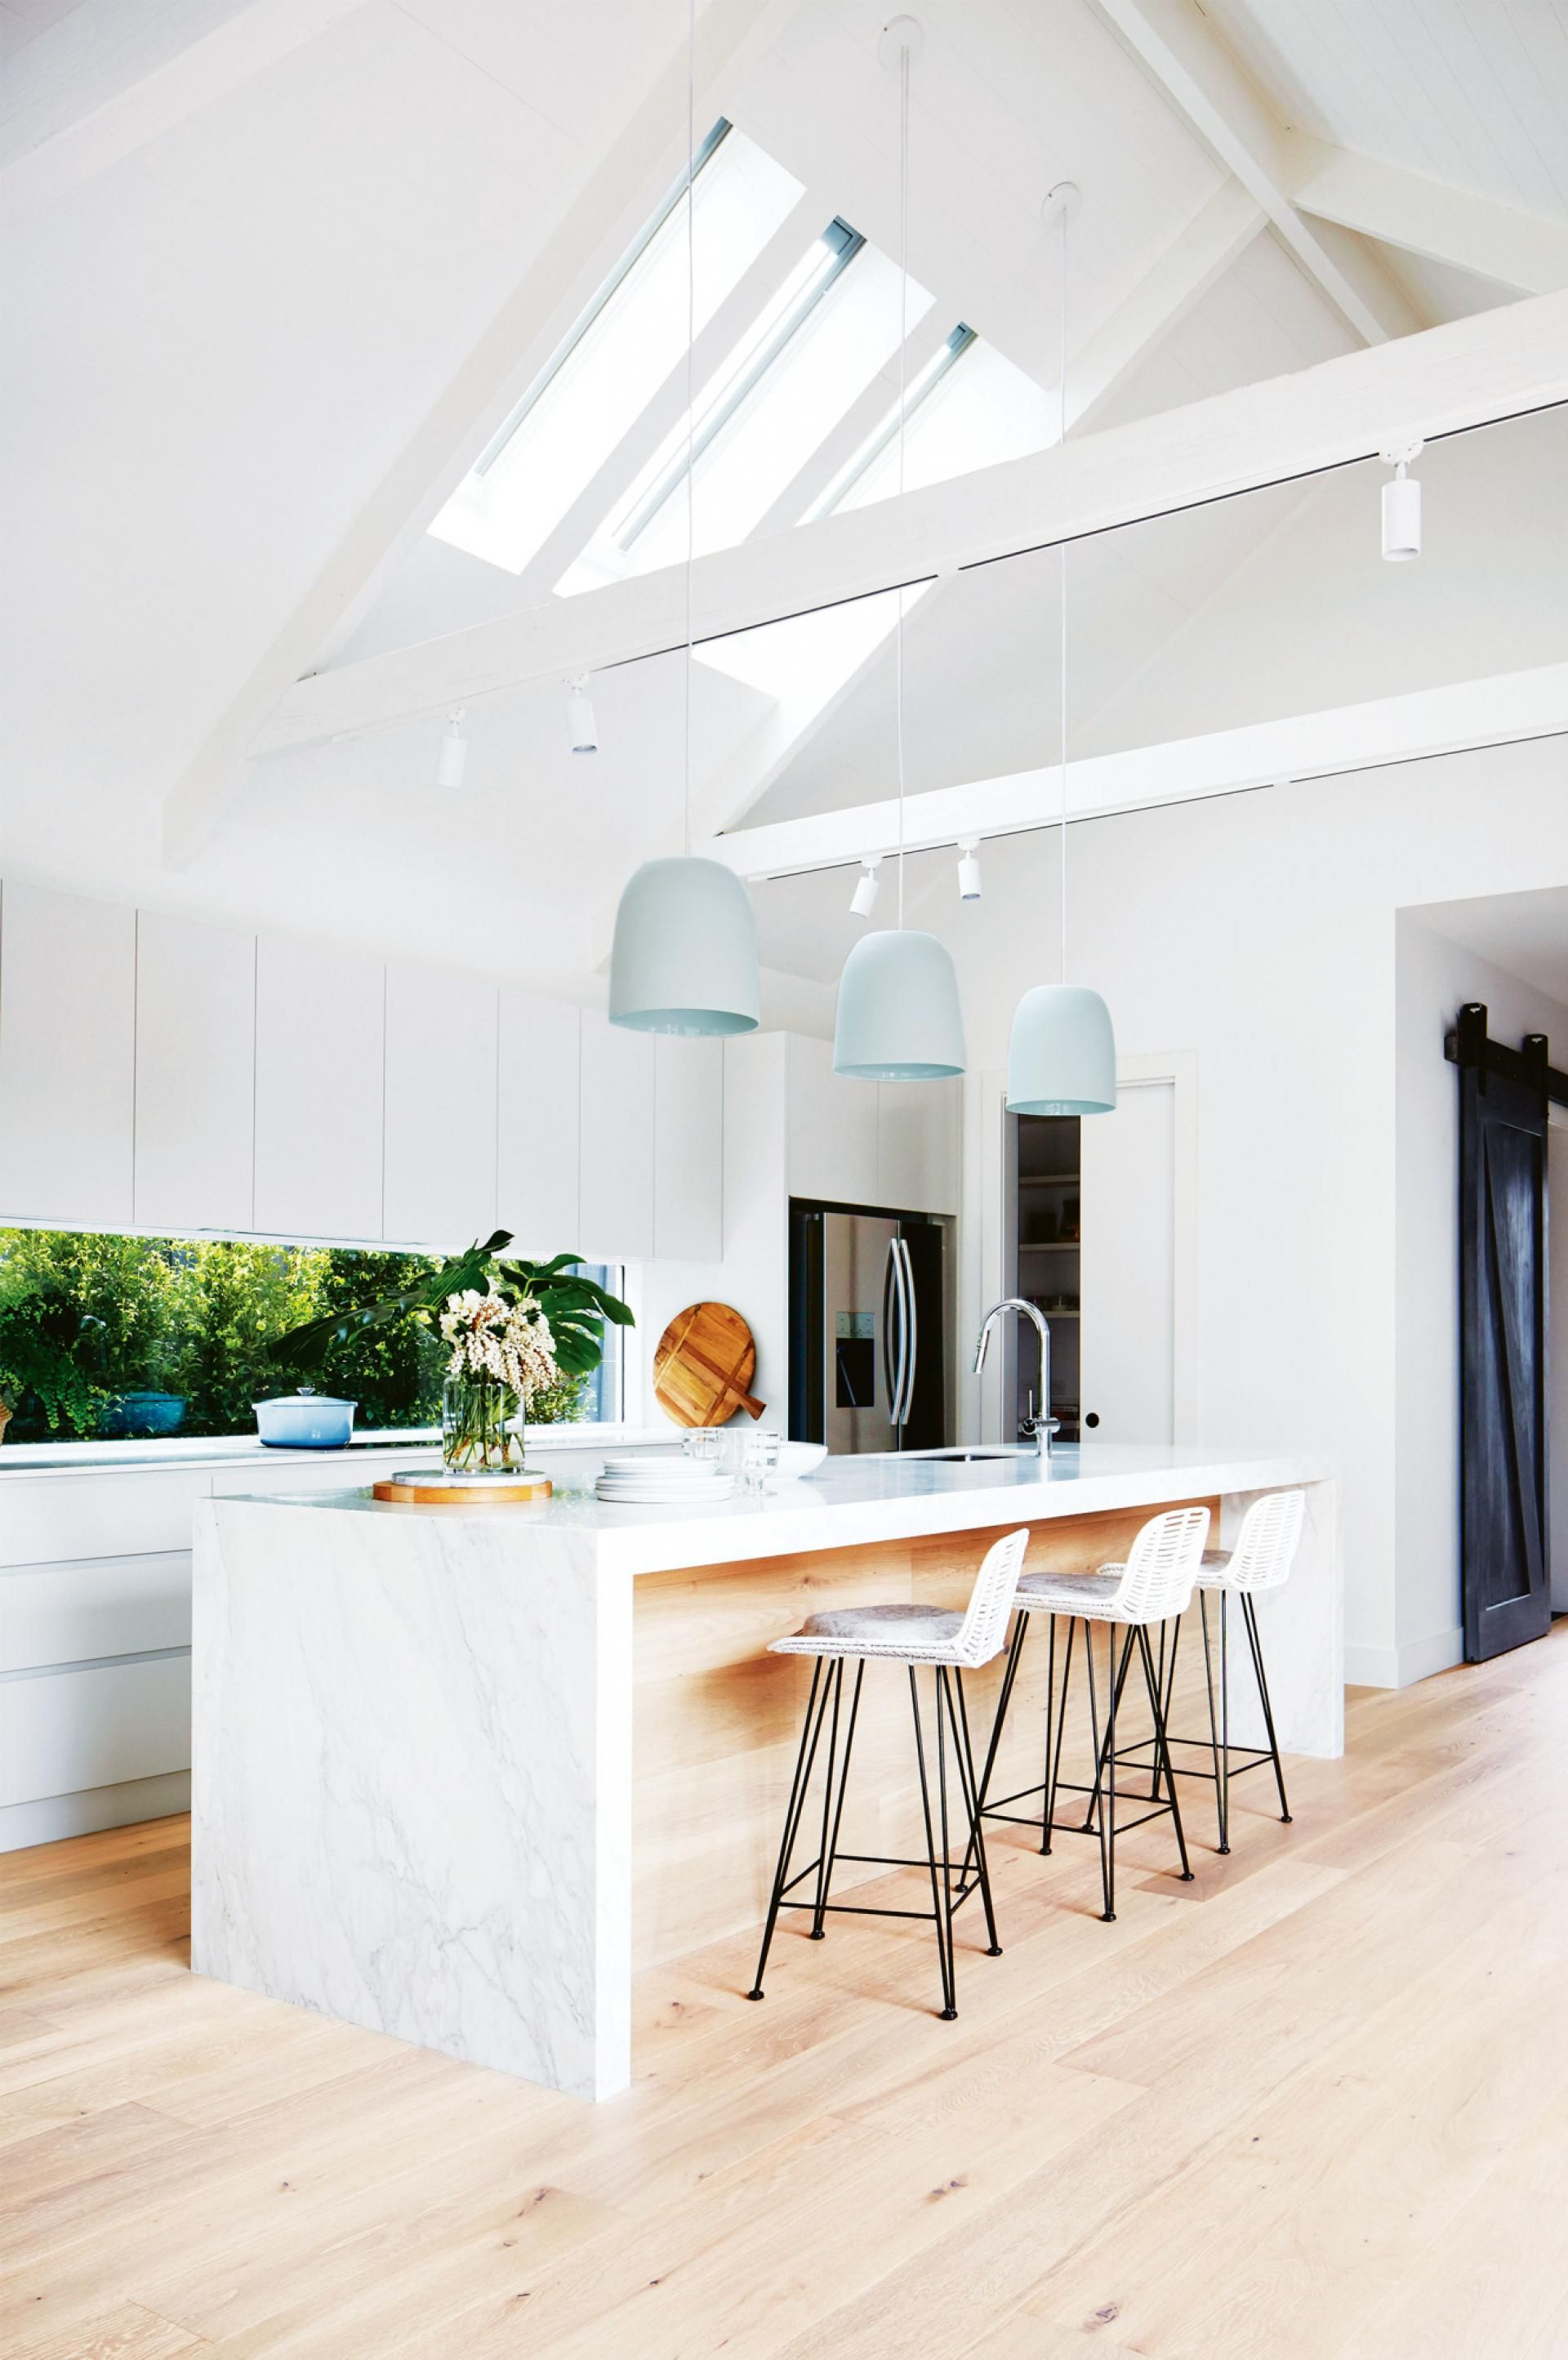 Admirable 21 Gorgeous Pendant Lights Over An Island Bench Kitchen Ibusinesslaw Wood Chair Design Ideas Ibusinesslaworg